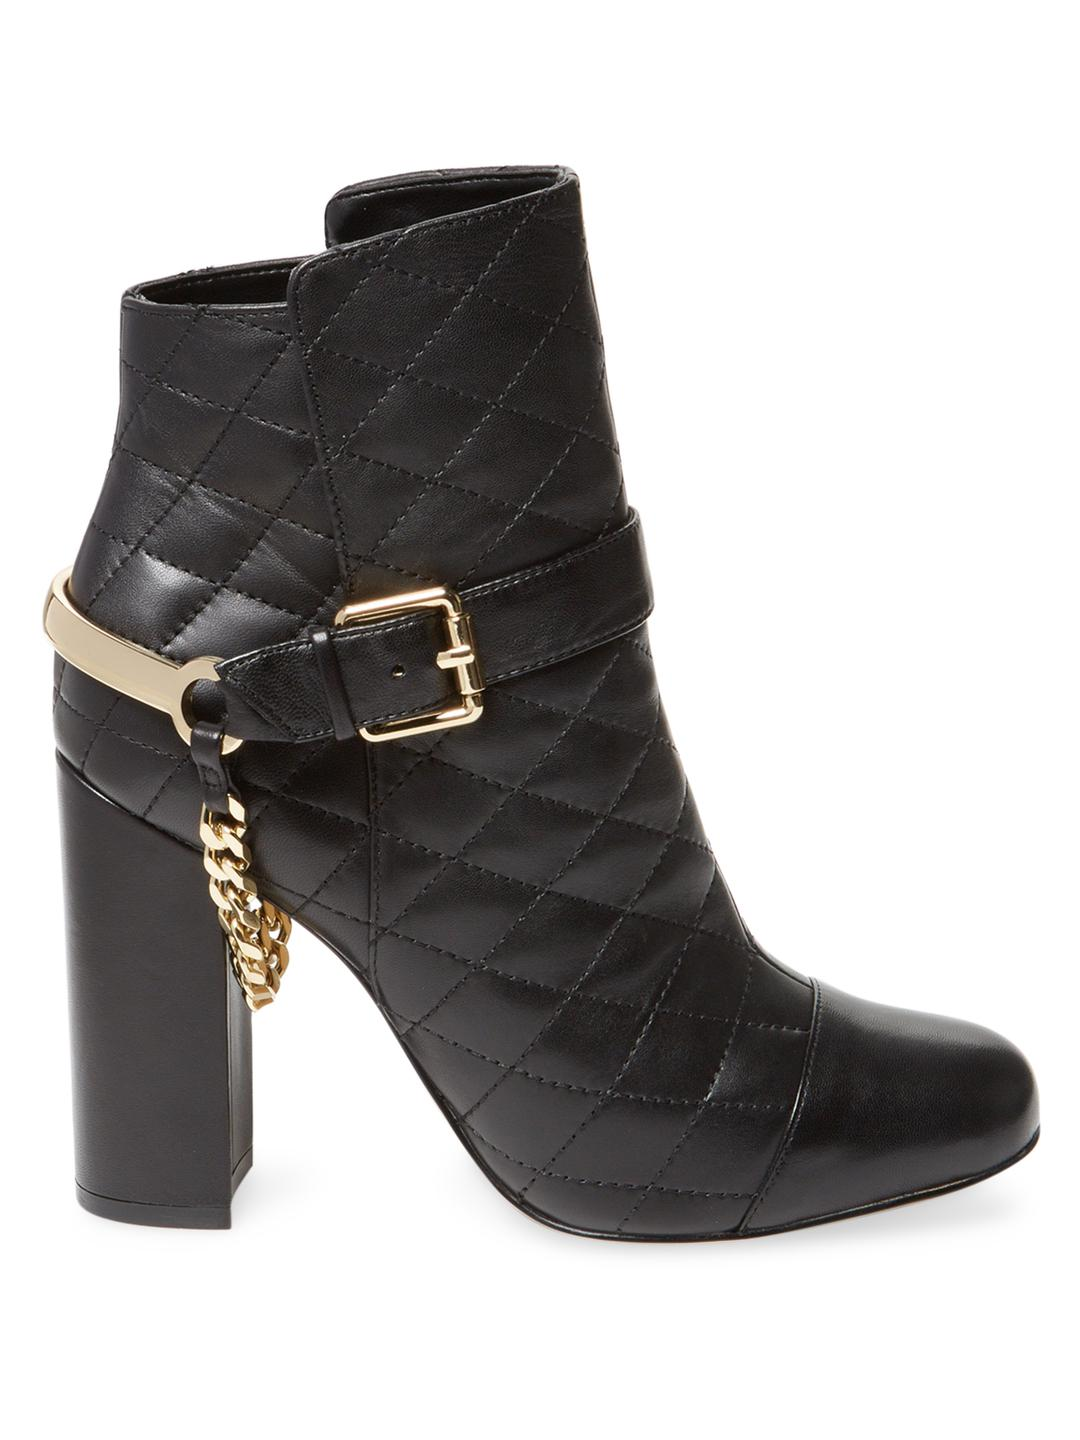 Karl Lagerfeld Leather Seeva Quilted Bootie in Black